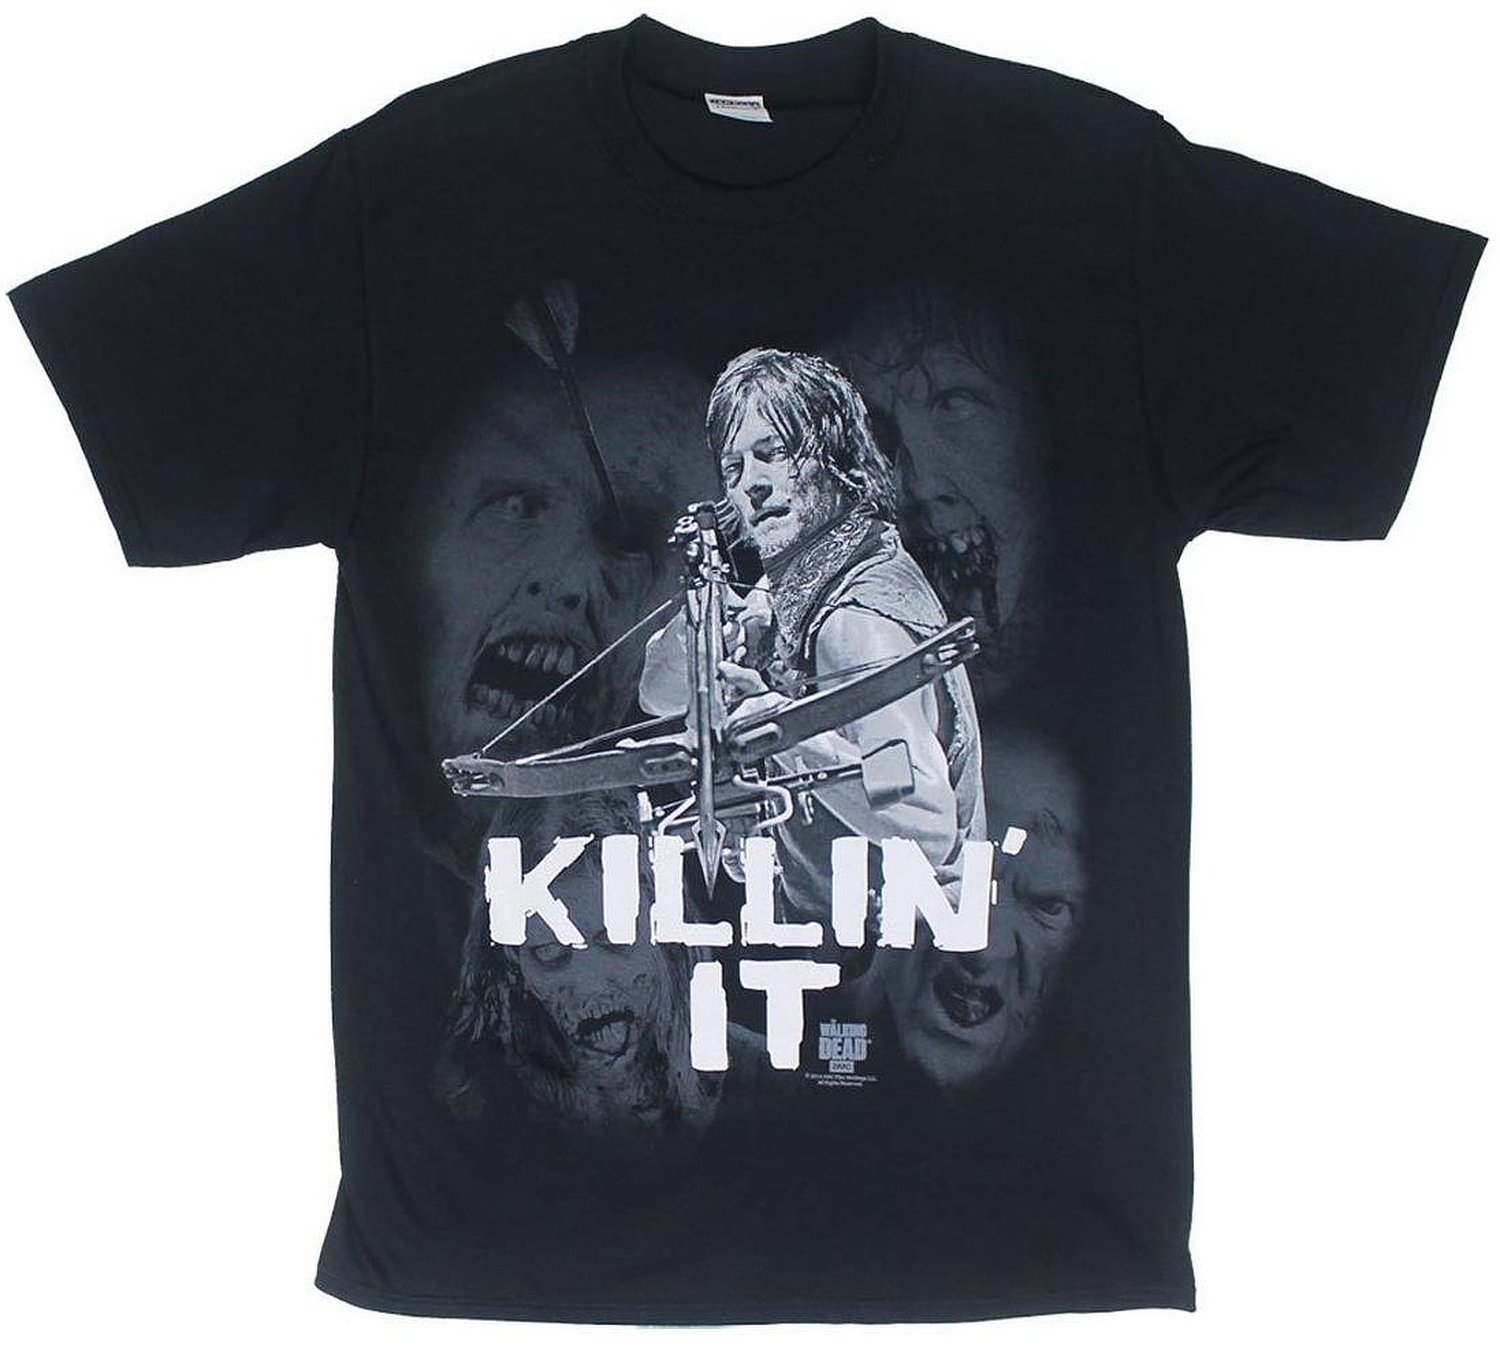 Amazon.com: The Walking Dead Daryl Killin It Mens Black T-Shirt: Clothing